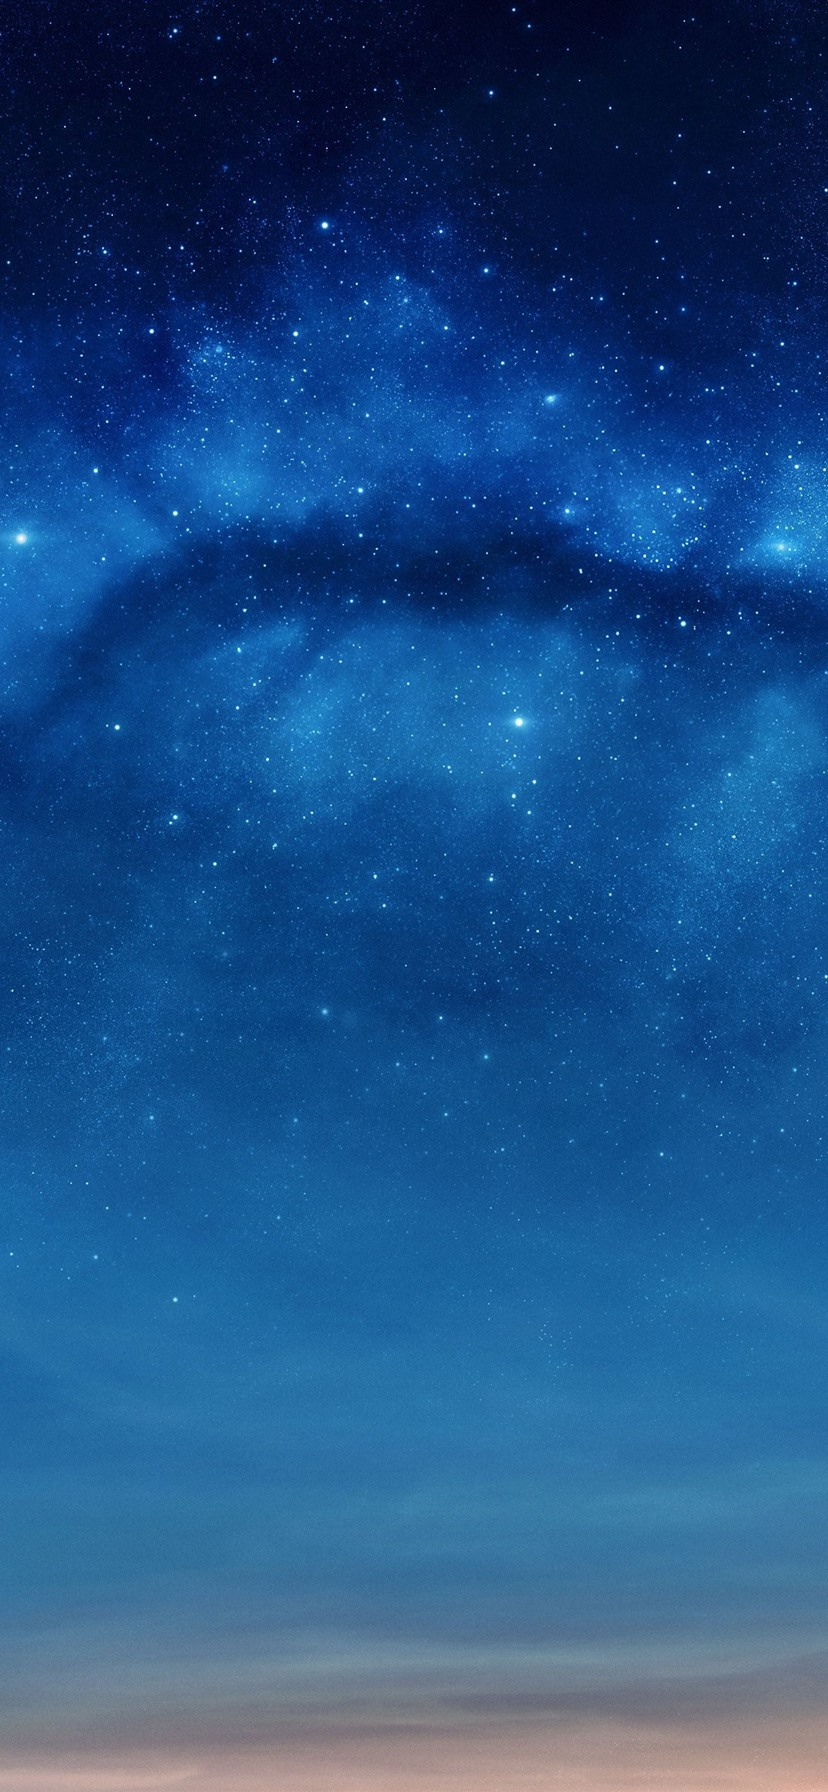 Stars Blue Sky Night 1242x2688 Iphone 11 Pro Xs Max Wallpaper Background Picture Image